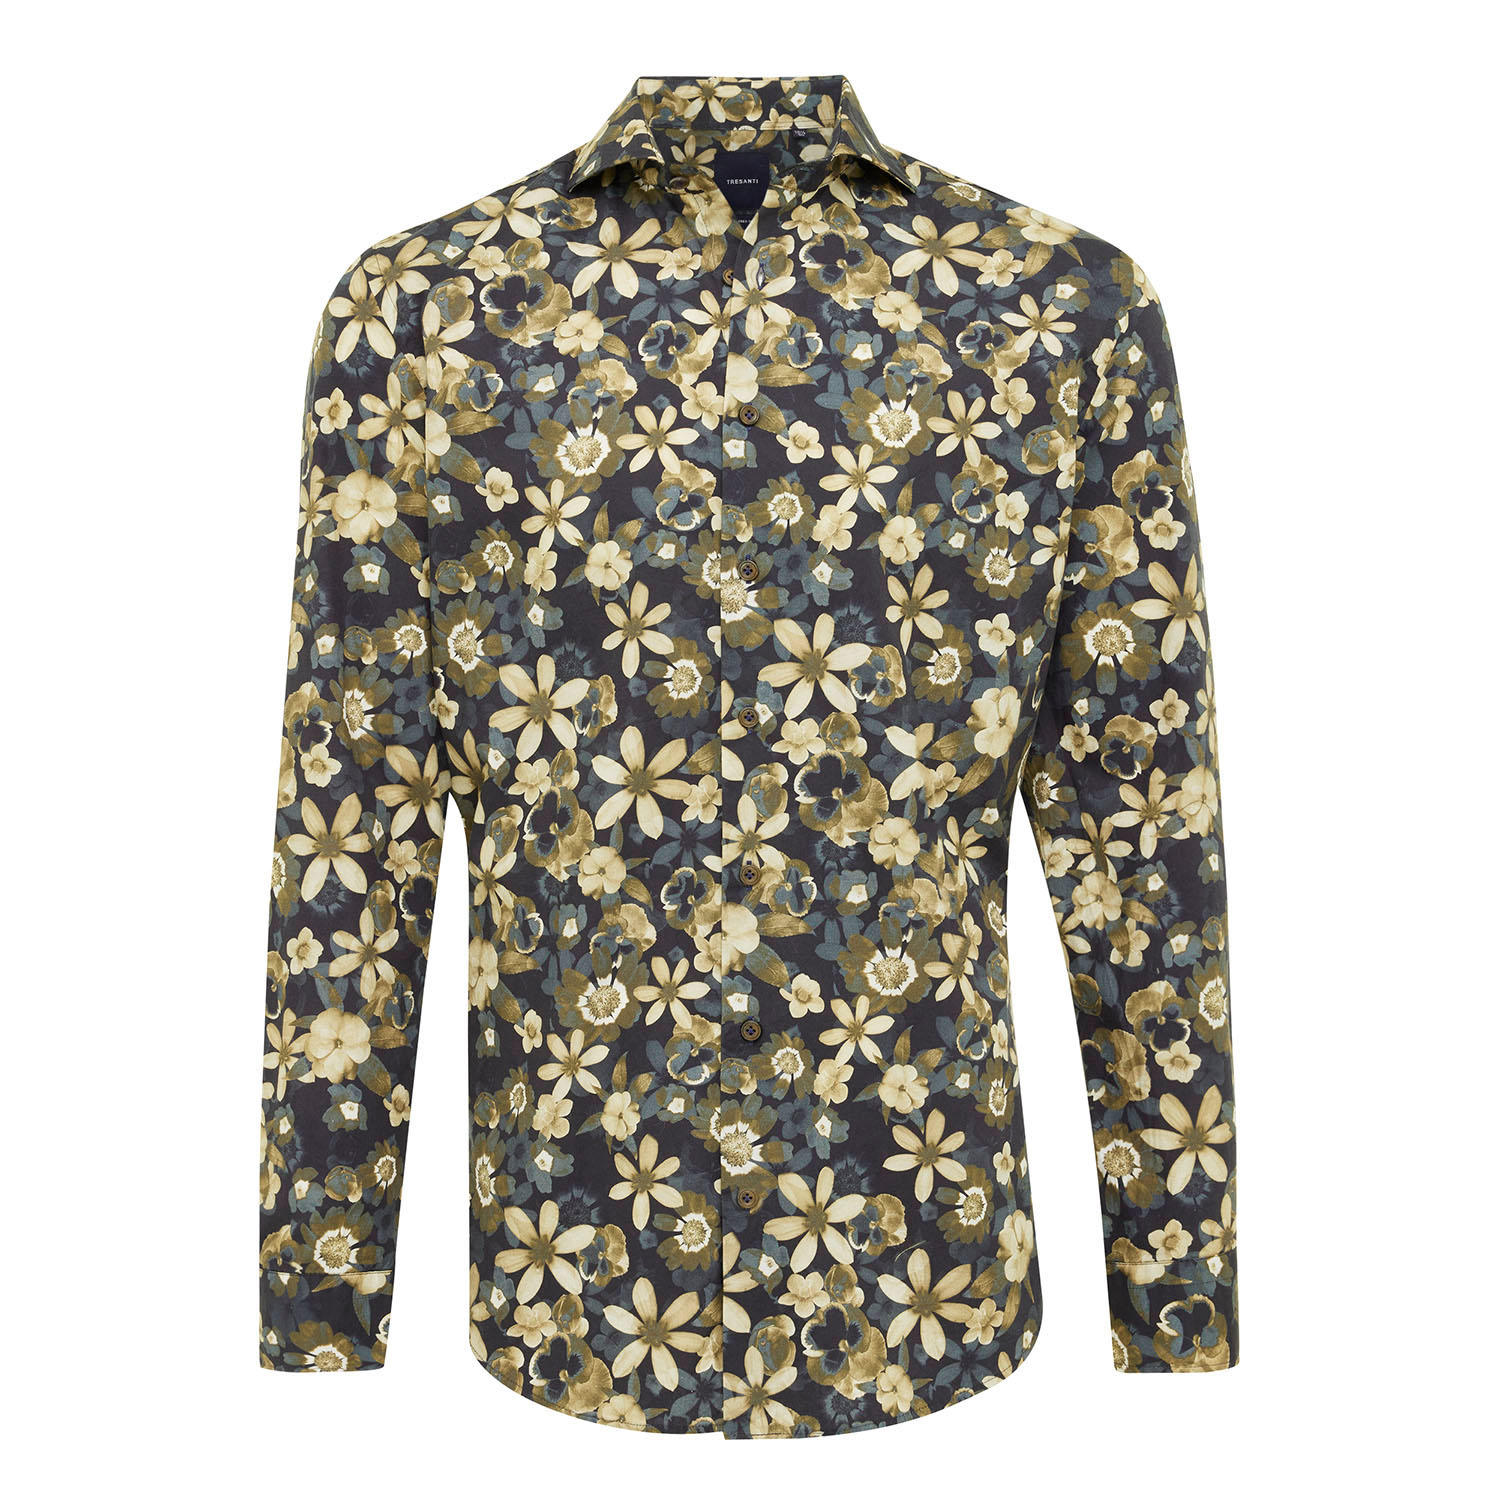 EPHRON | Shirt with button closure and leaf pattern beige